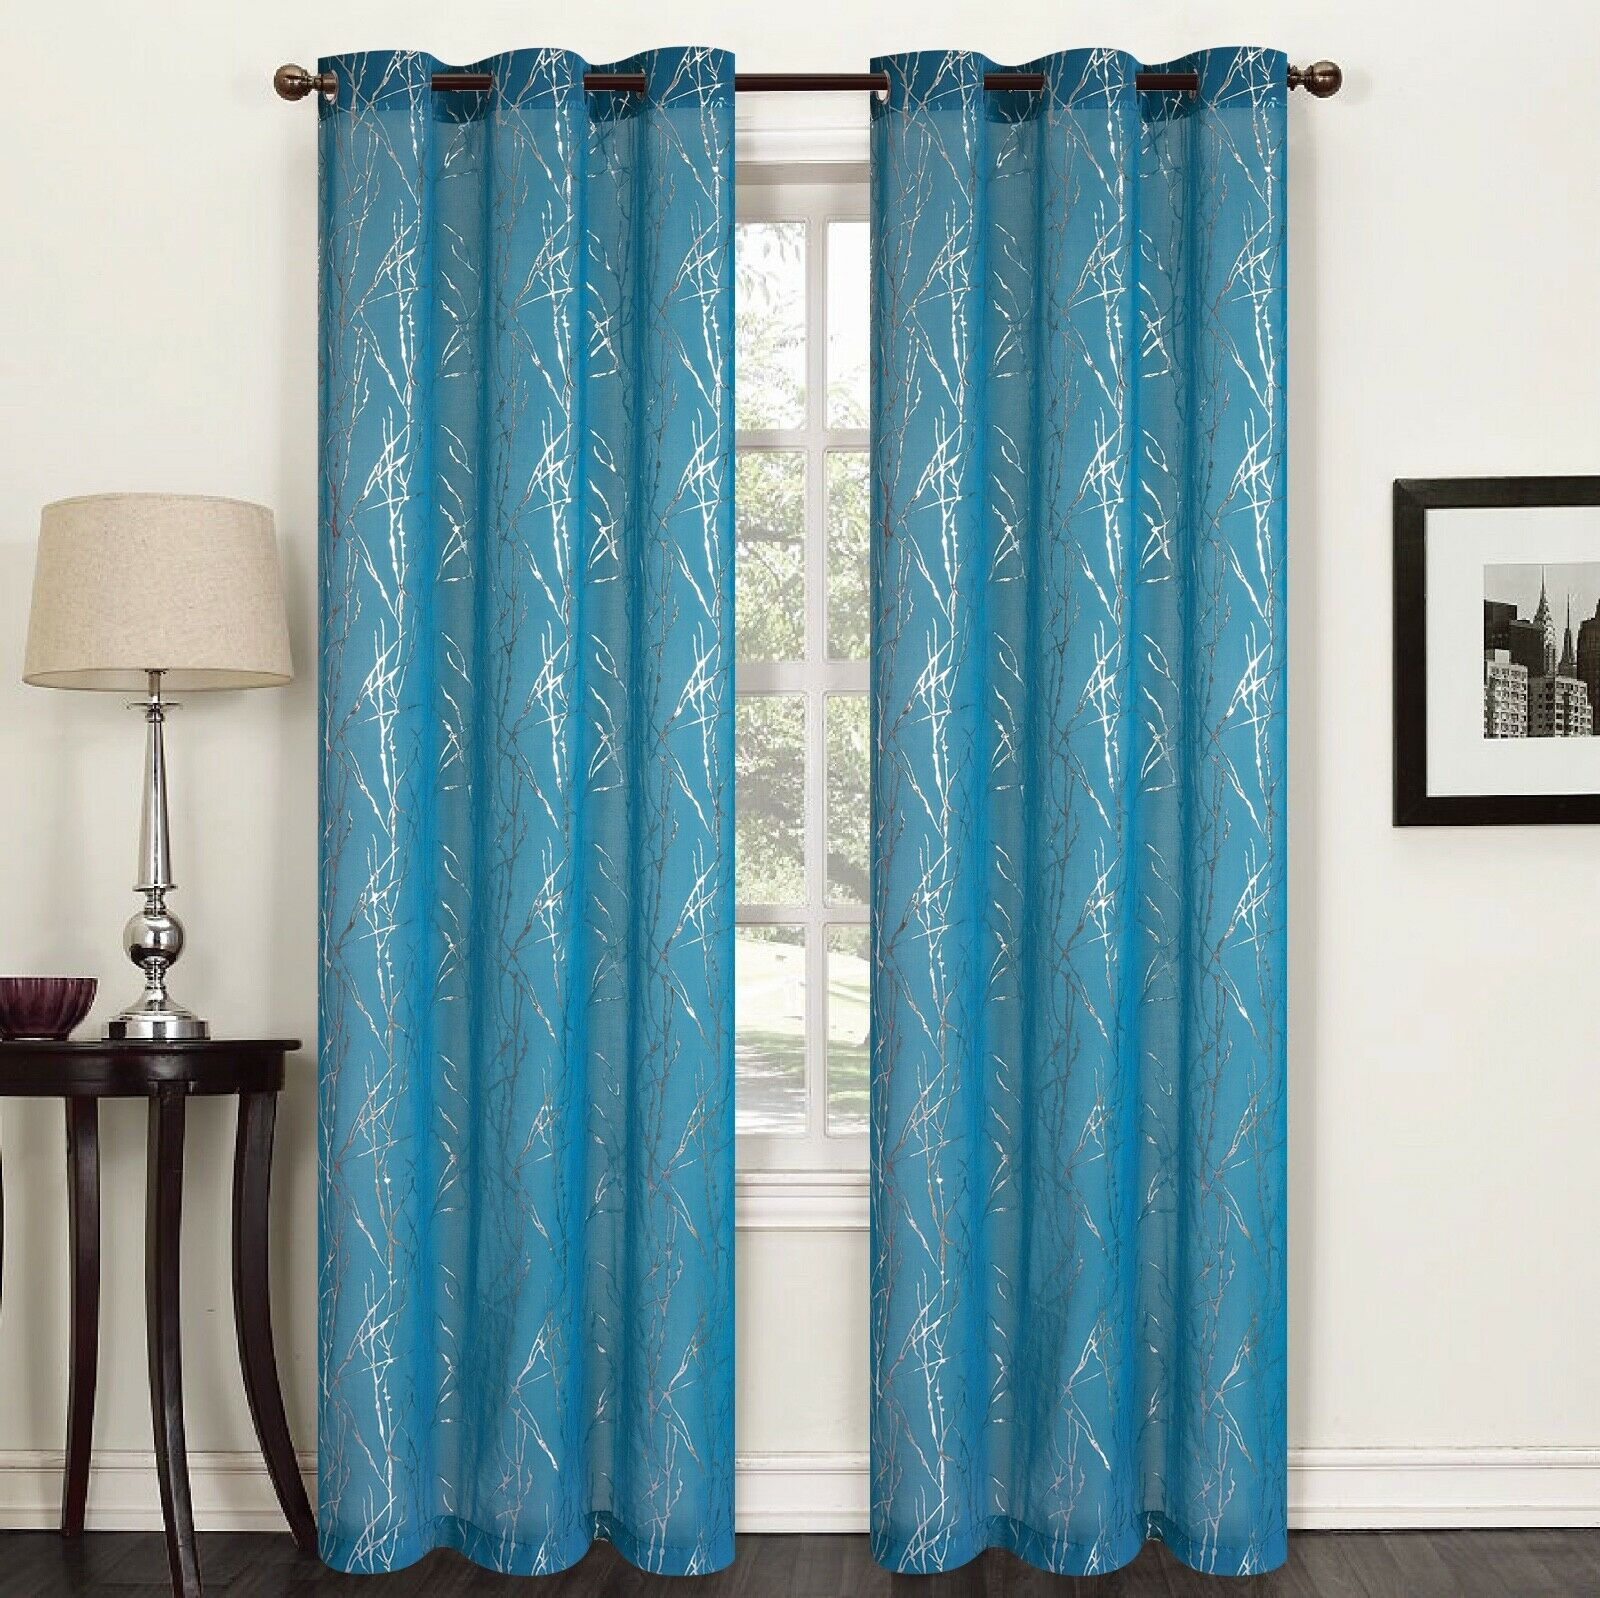 "Flora 84"" Long Faux Silk Window Curtain Grommets Panels Set of 2 - Teal Blue"